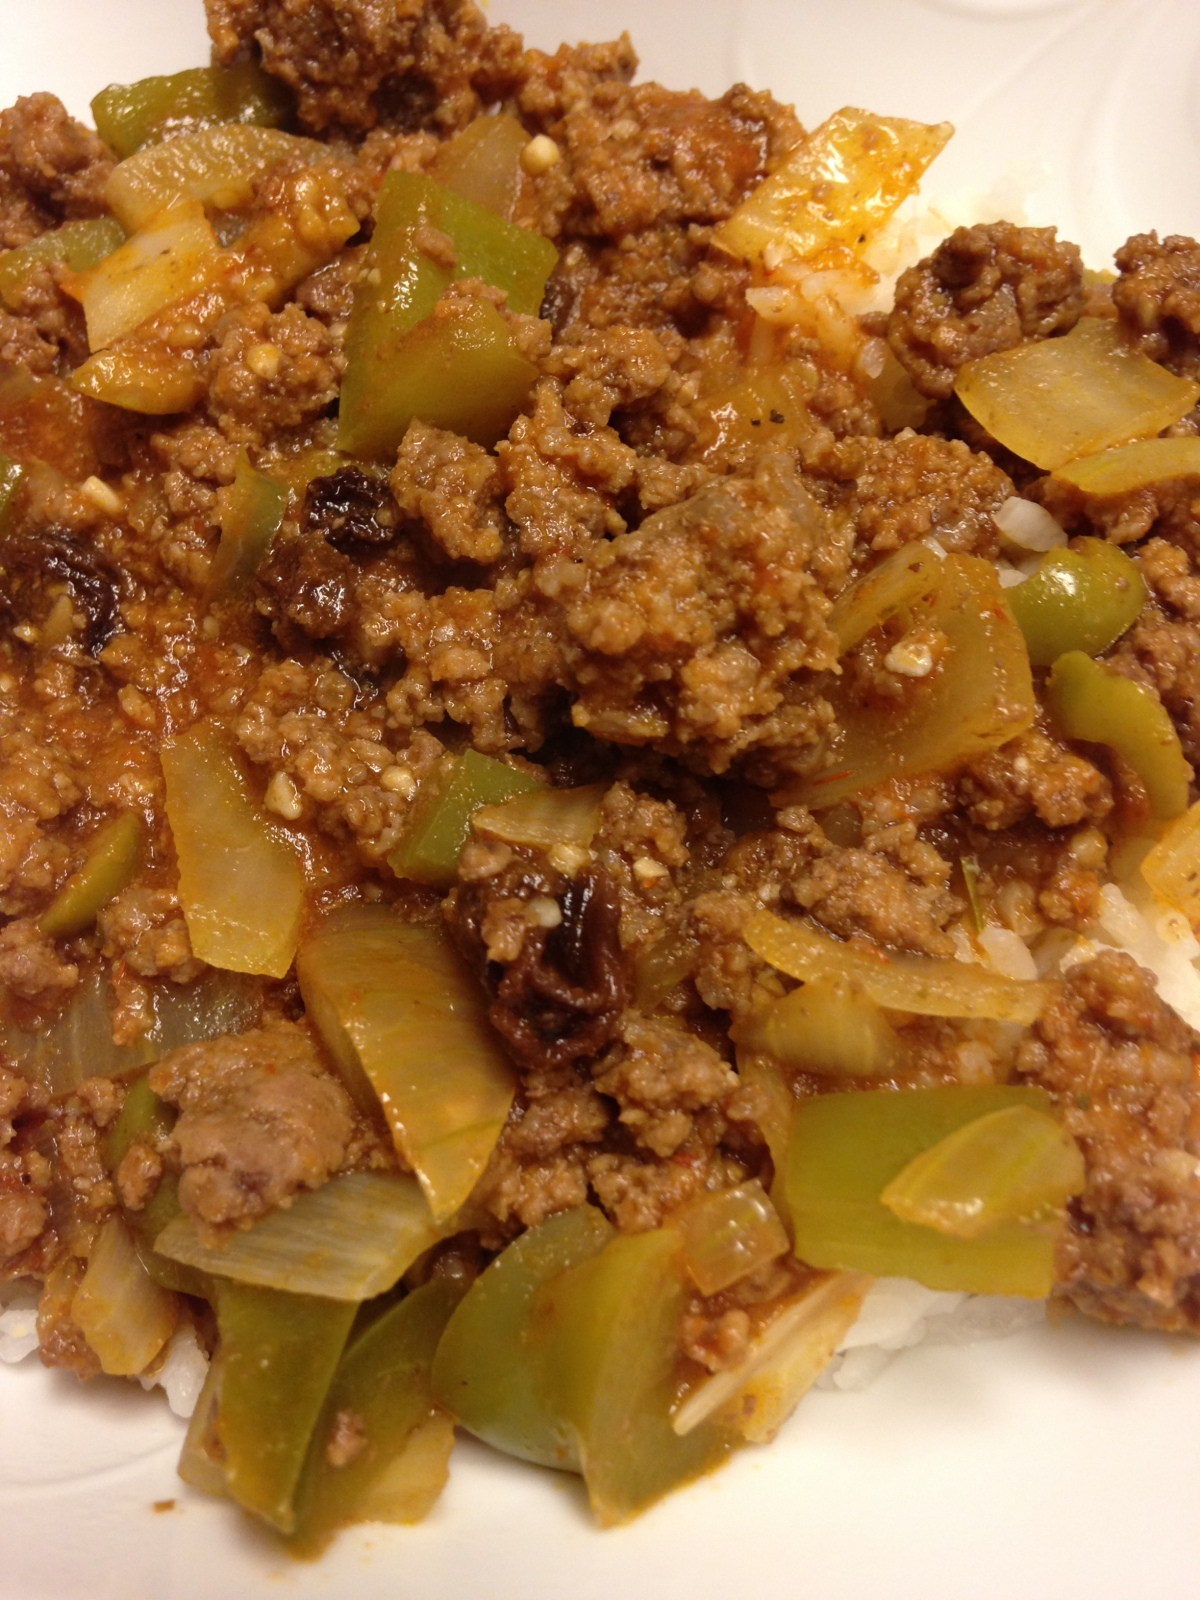 Picadillo Cubano (Cuban Ground Beef and Olives)